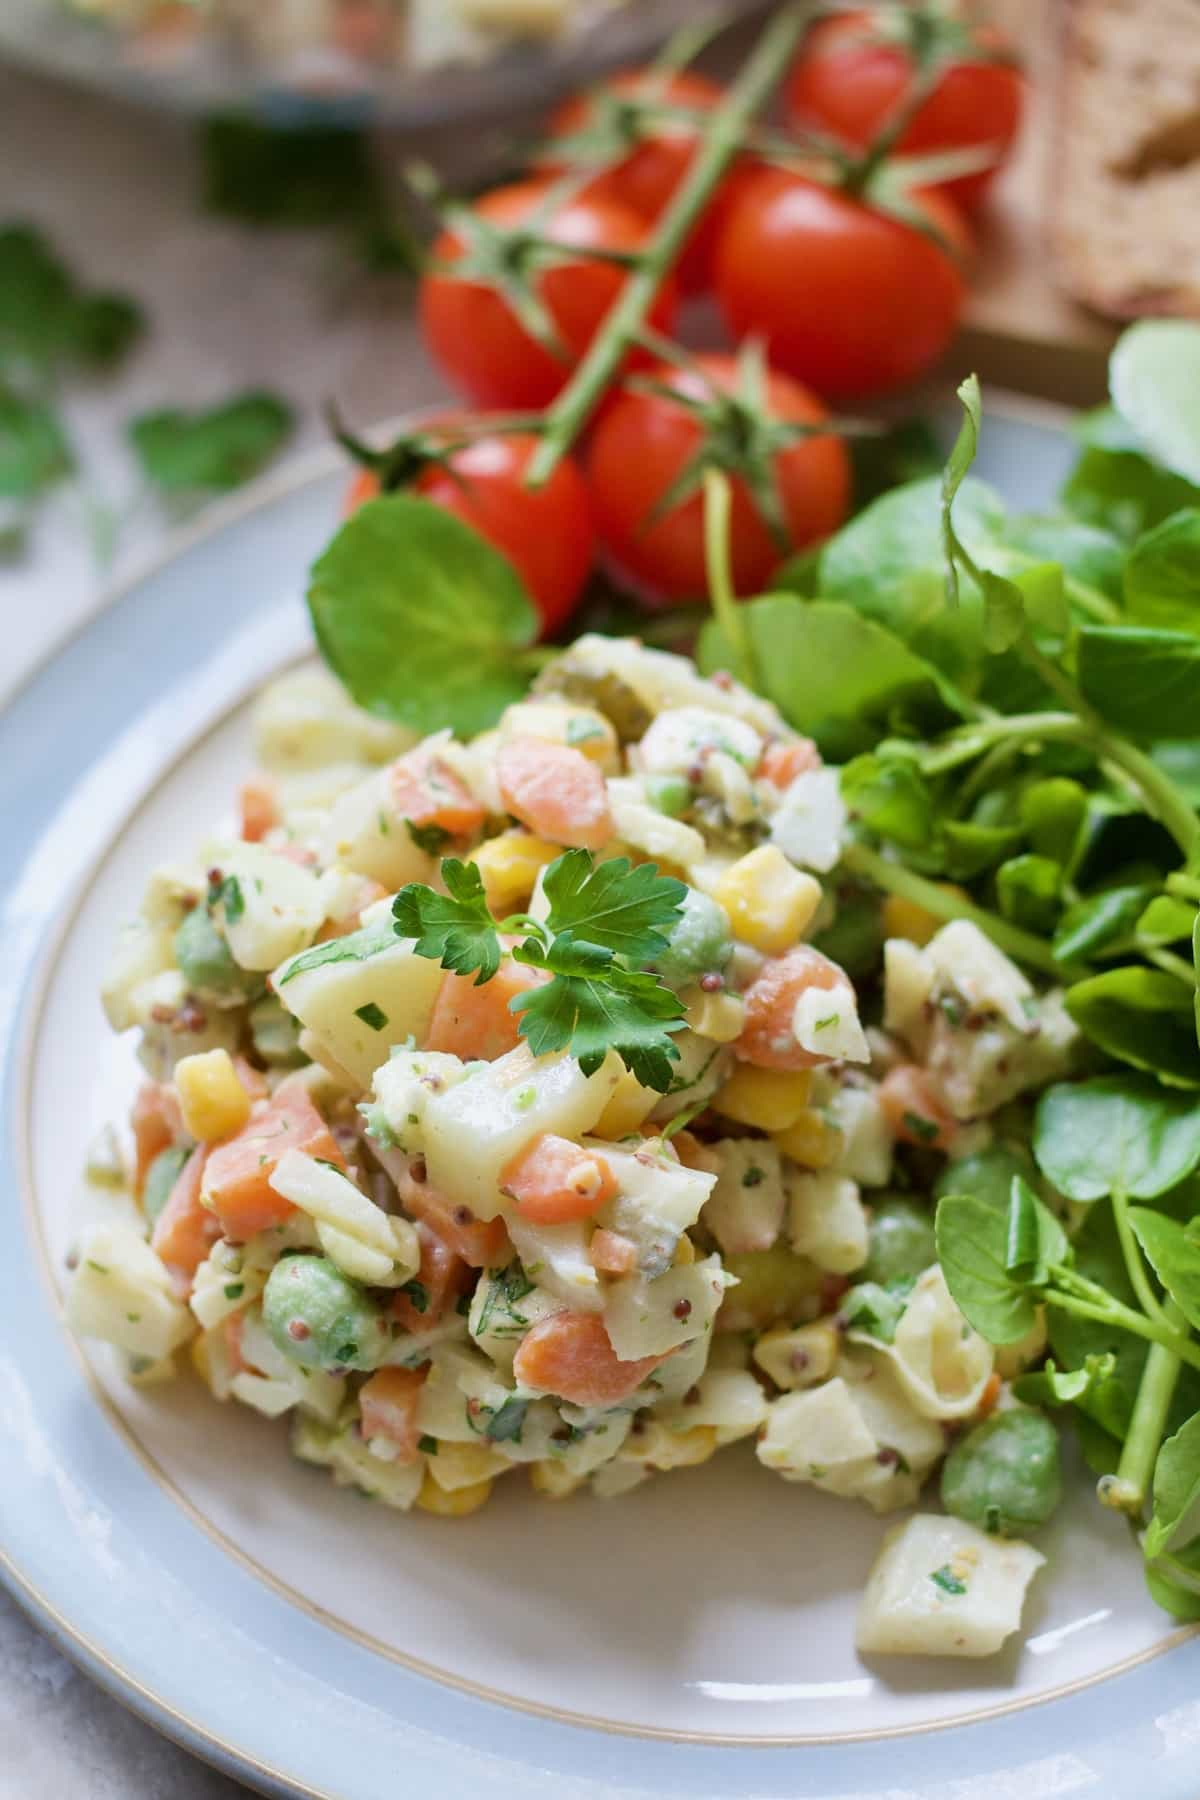 Russian Salad portion with watercress.